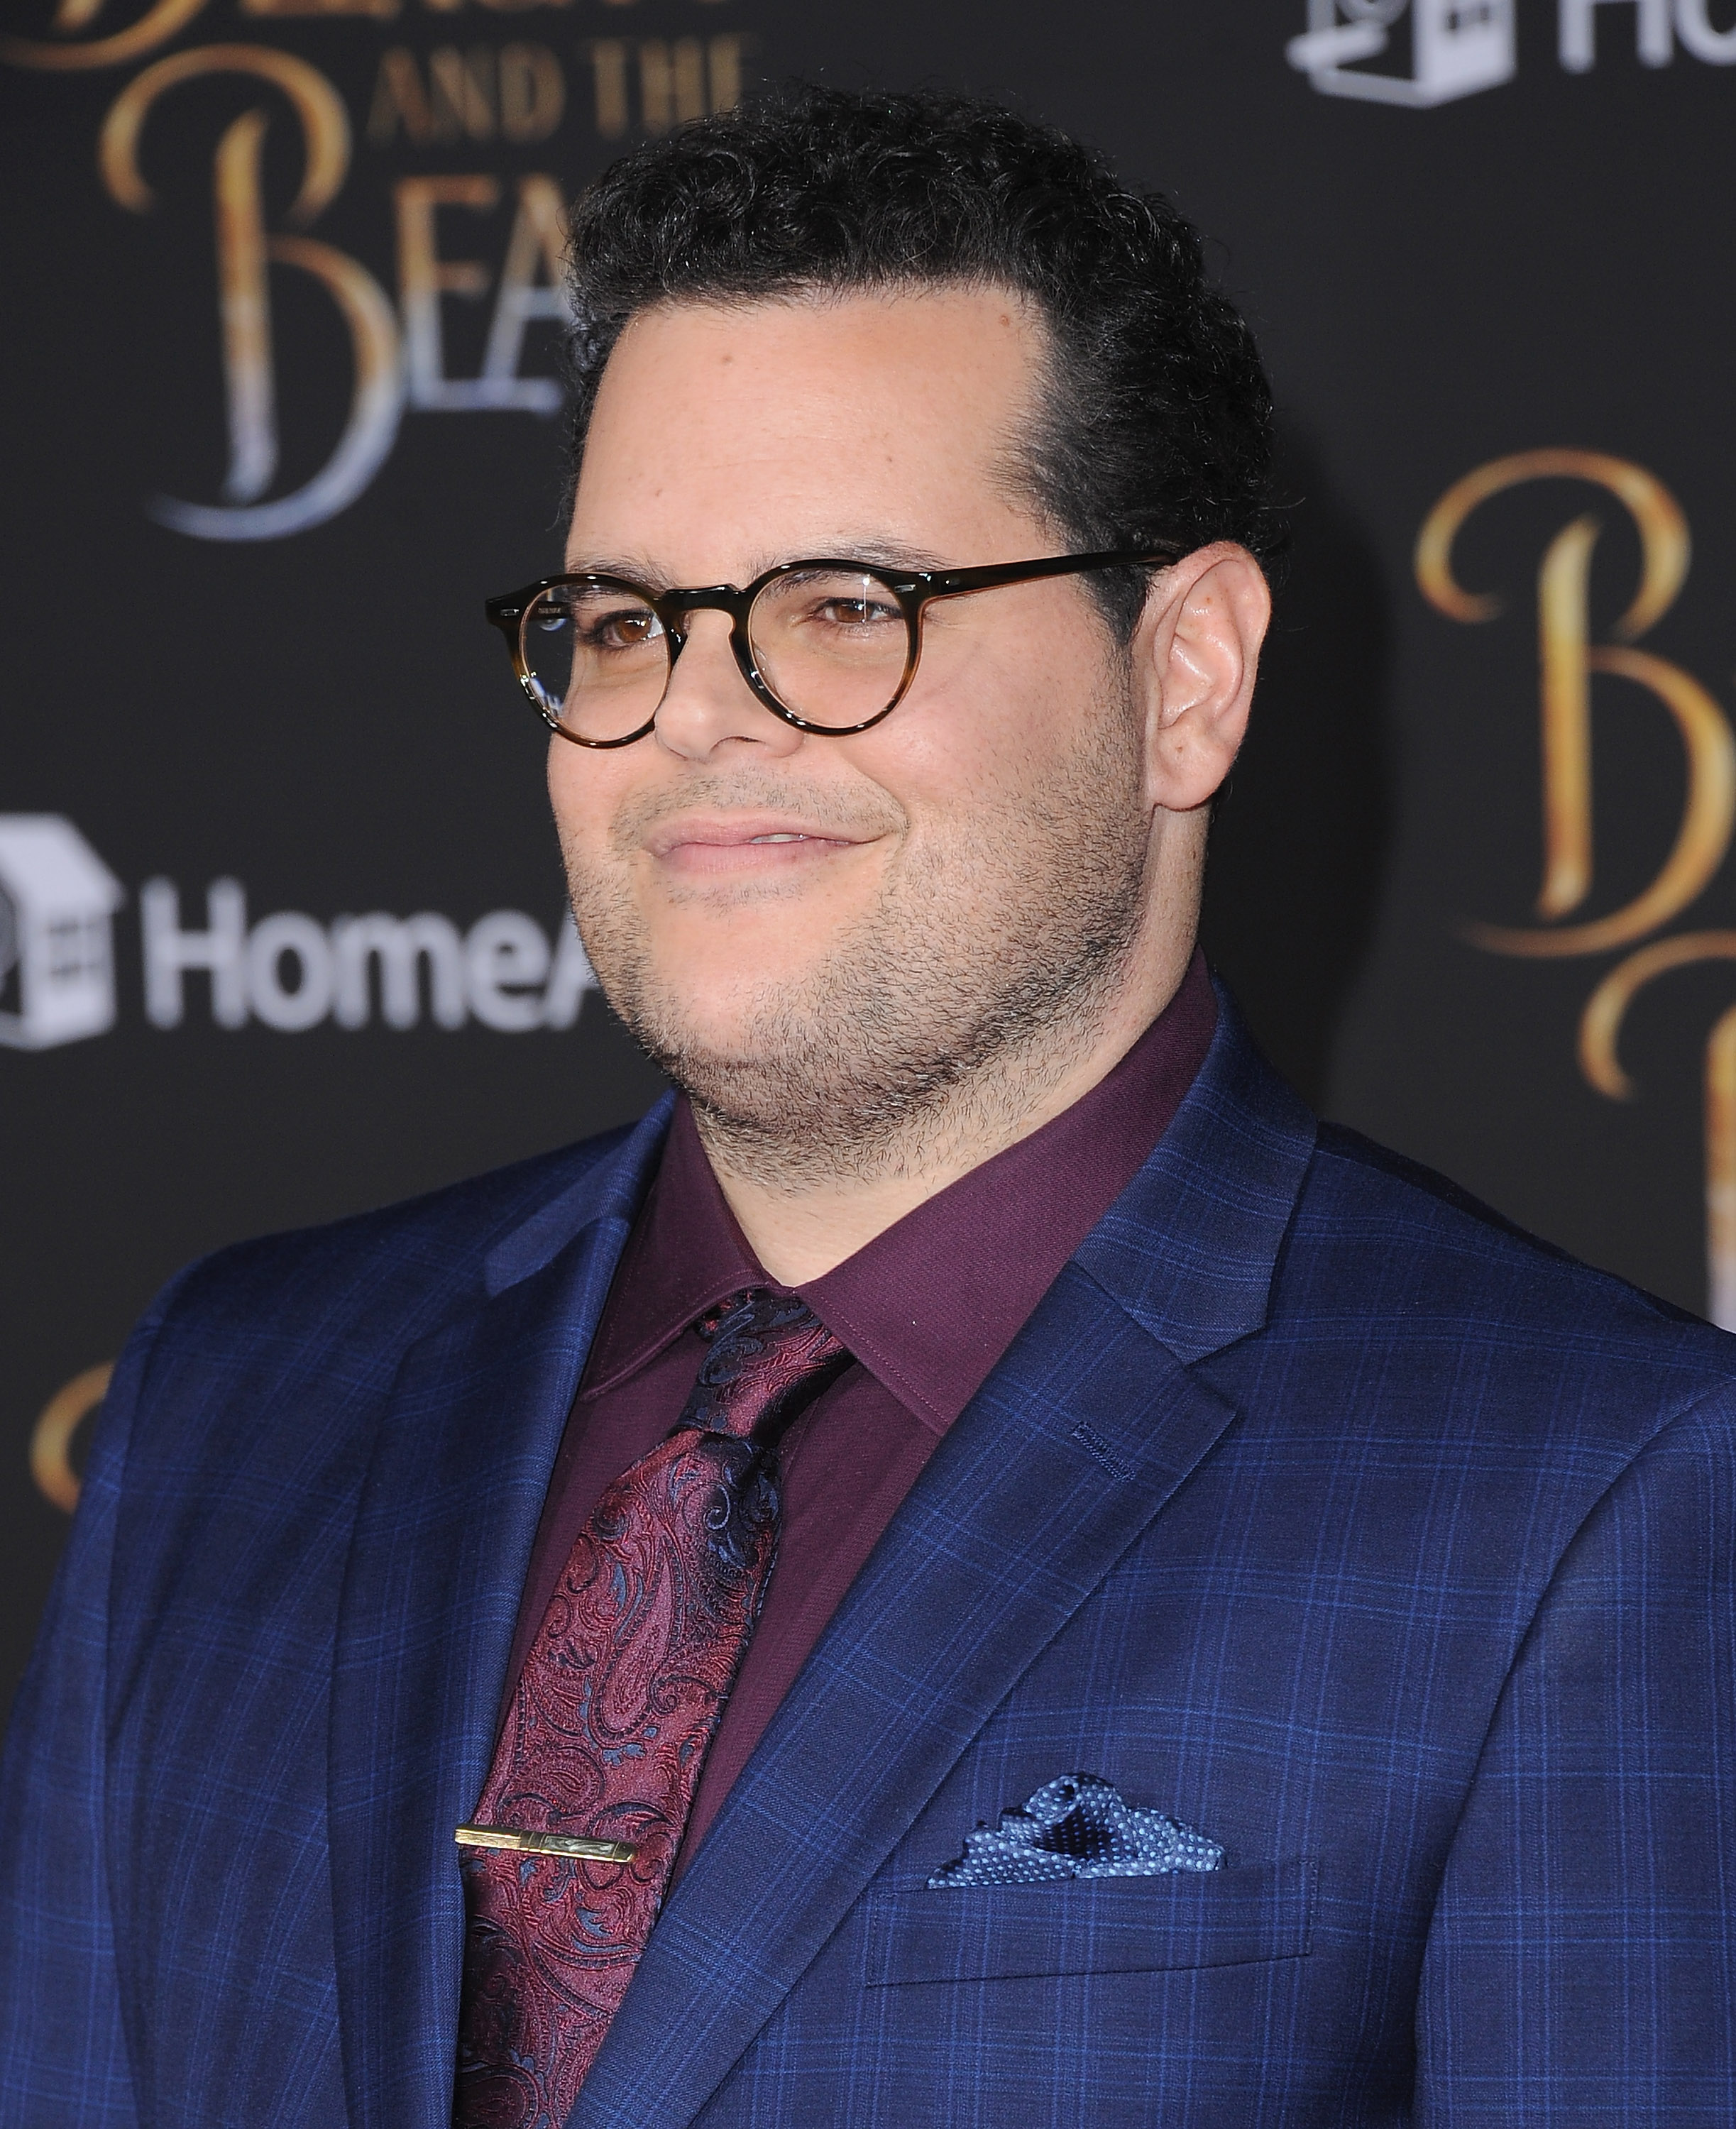 Actor Josh Gad arrives at the Los Angeles Premiere  Beauty And The Beast  at El Capitan Theatre on March 2, 2017 in Los Angeles, California.